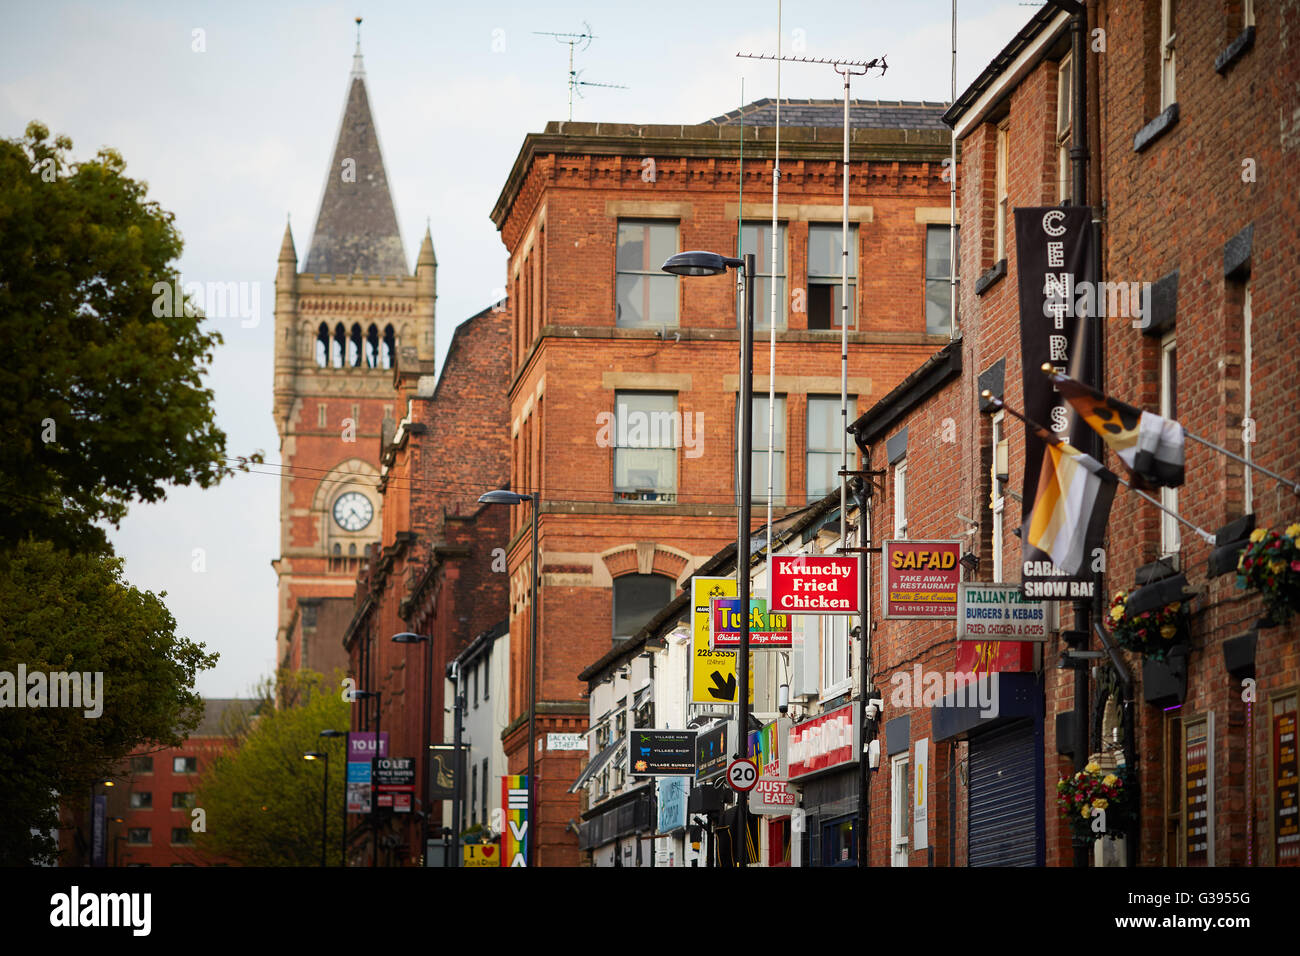 Manchester gay village - Stock Image